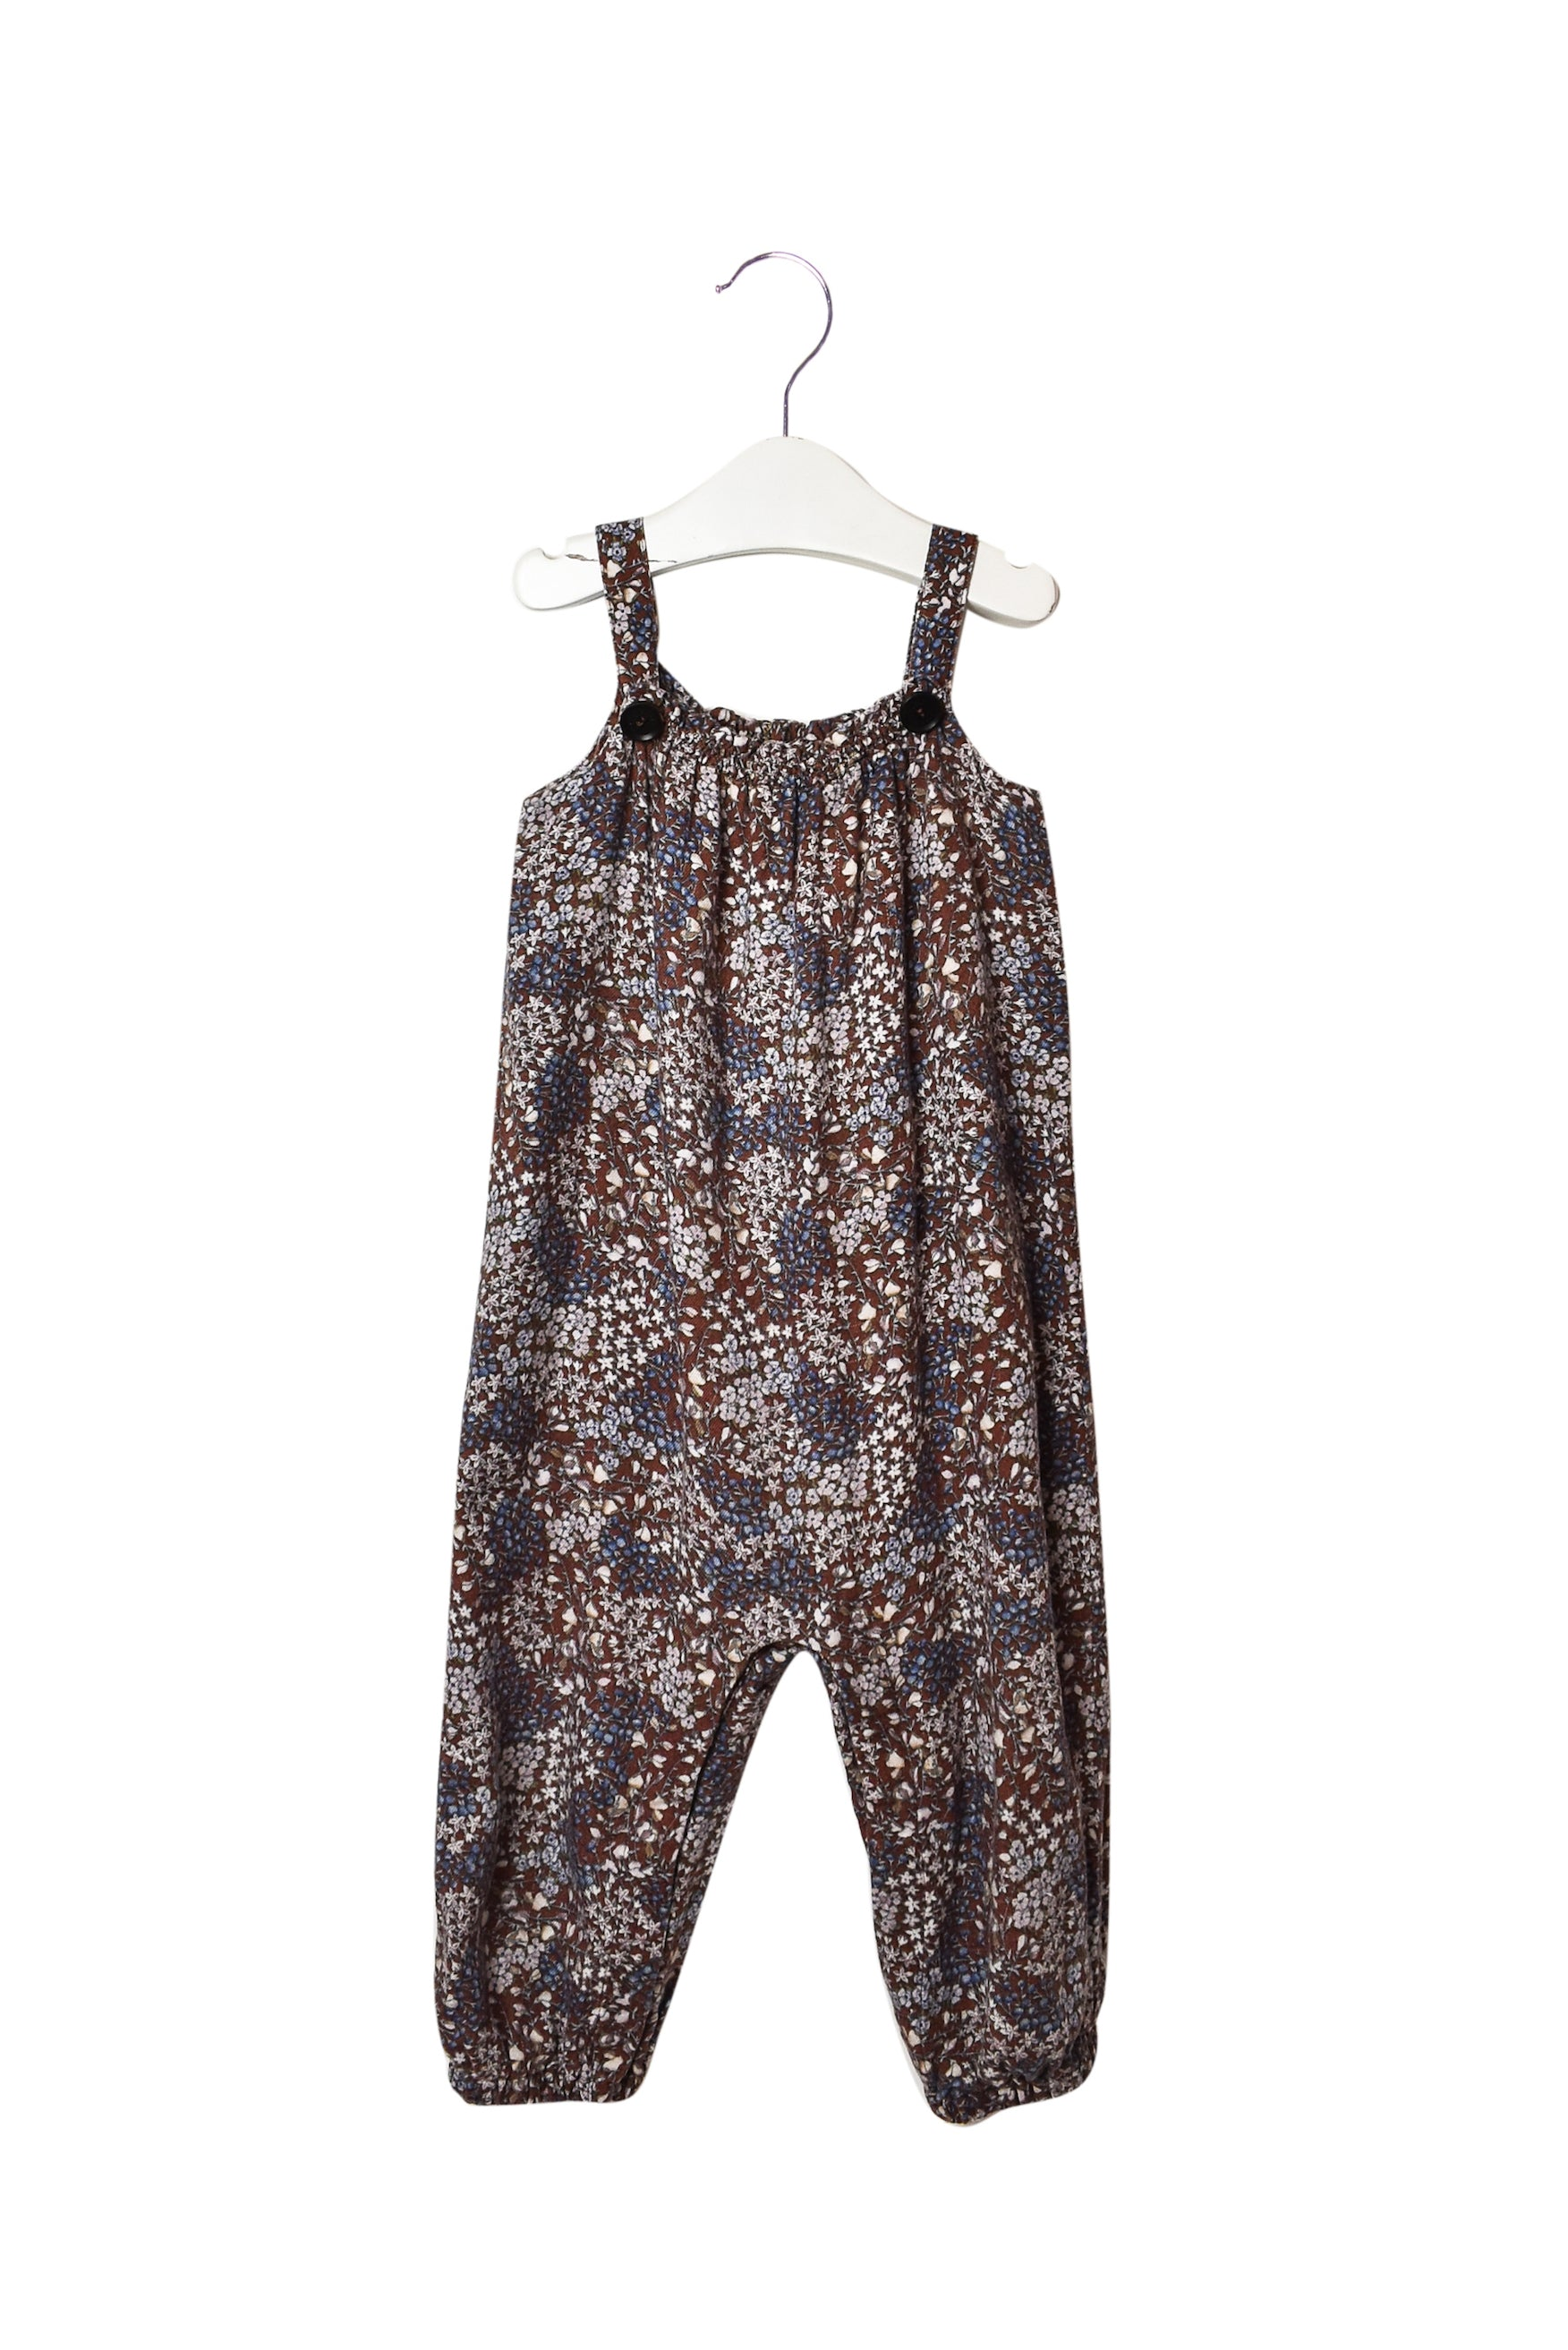 4f8f71276 10008110 Gucci Baby ~ Jumpsuit 12-18M at Retykle